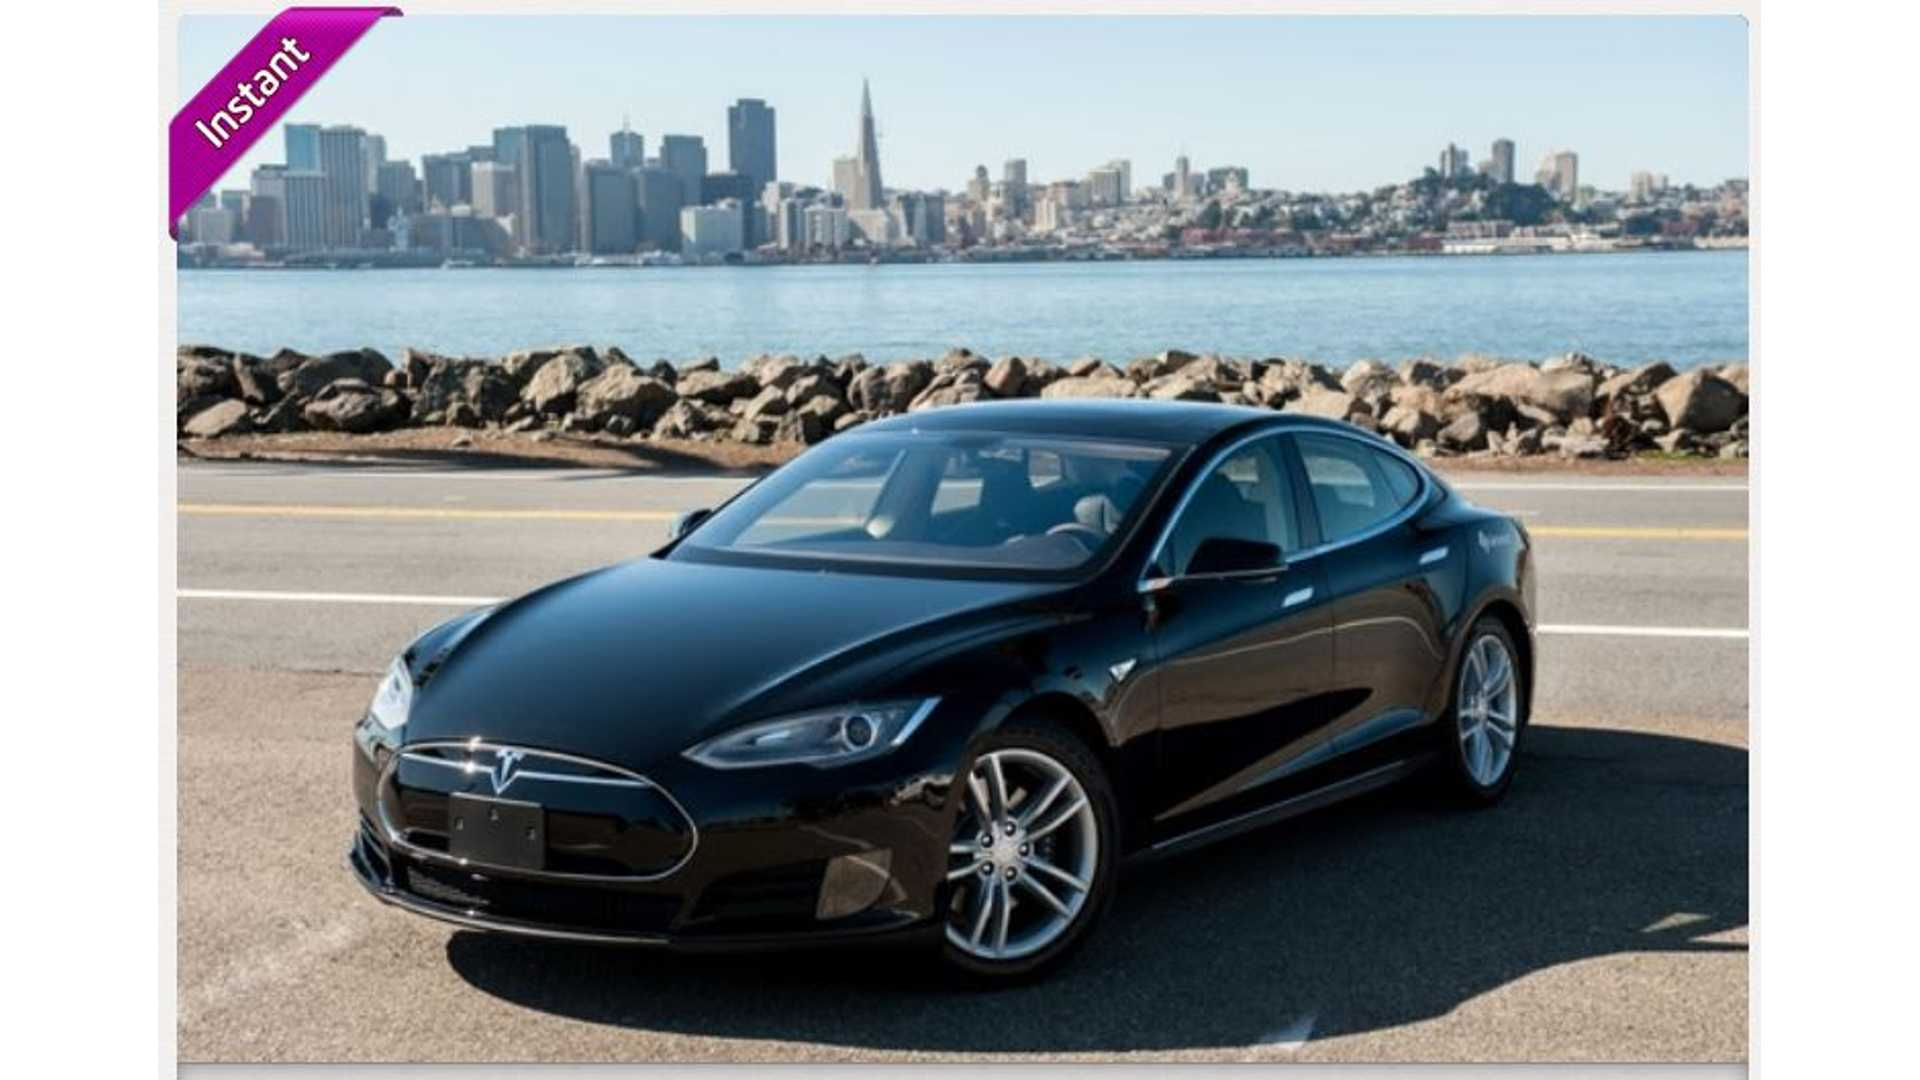 Interested in Renting a Tesla Model S for $20 Per Hour? Here's How